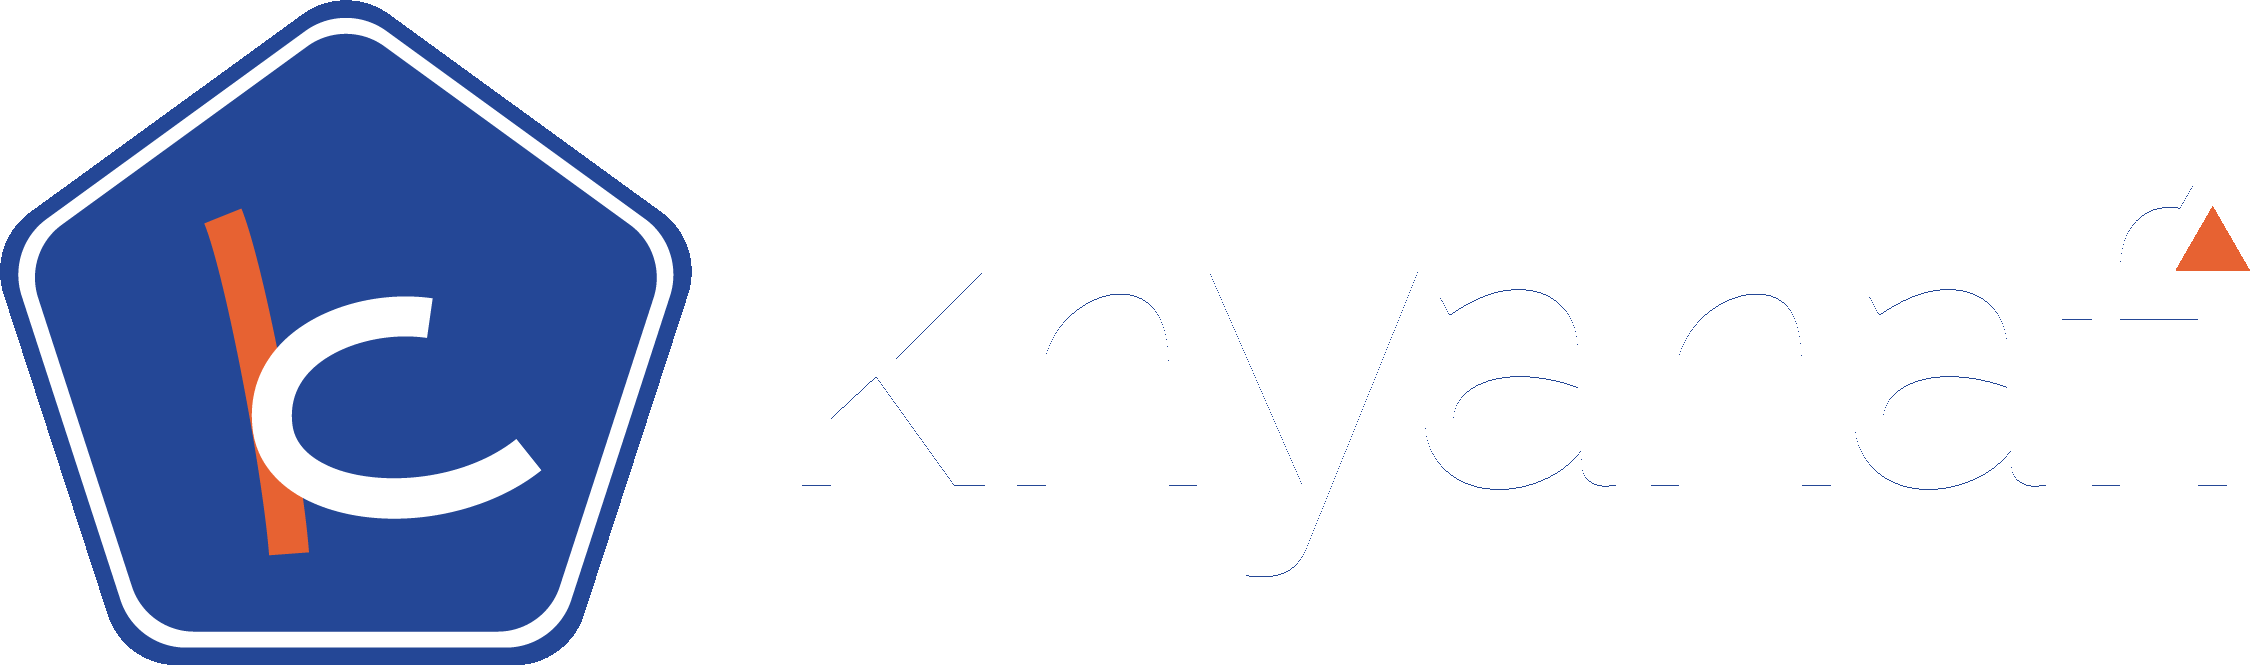 Khyanafi Management Consulting and Advisory Services firm